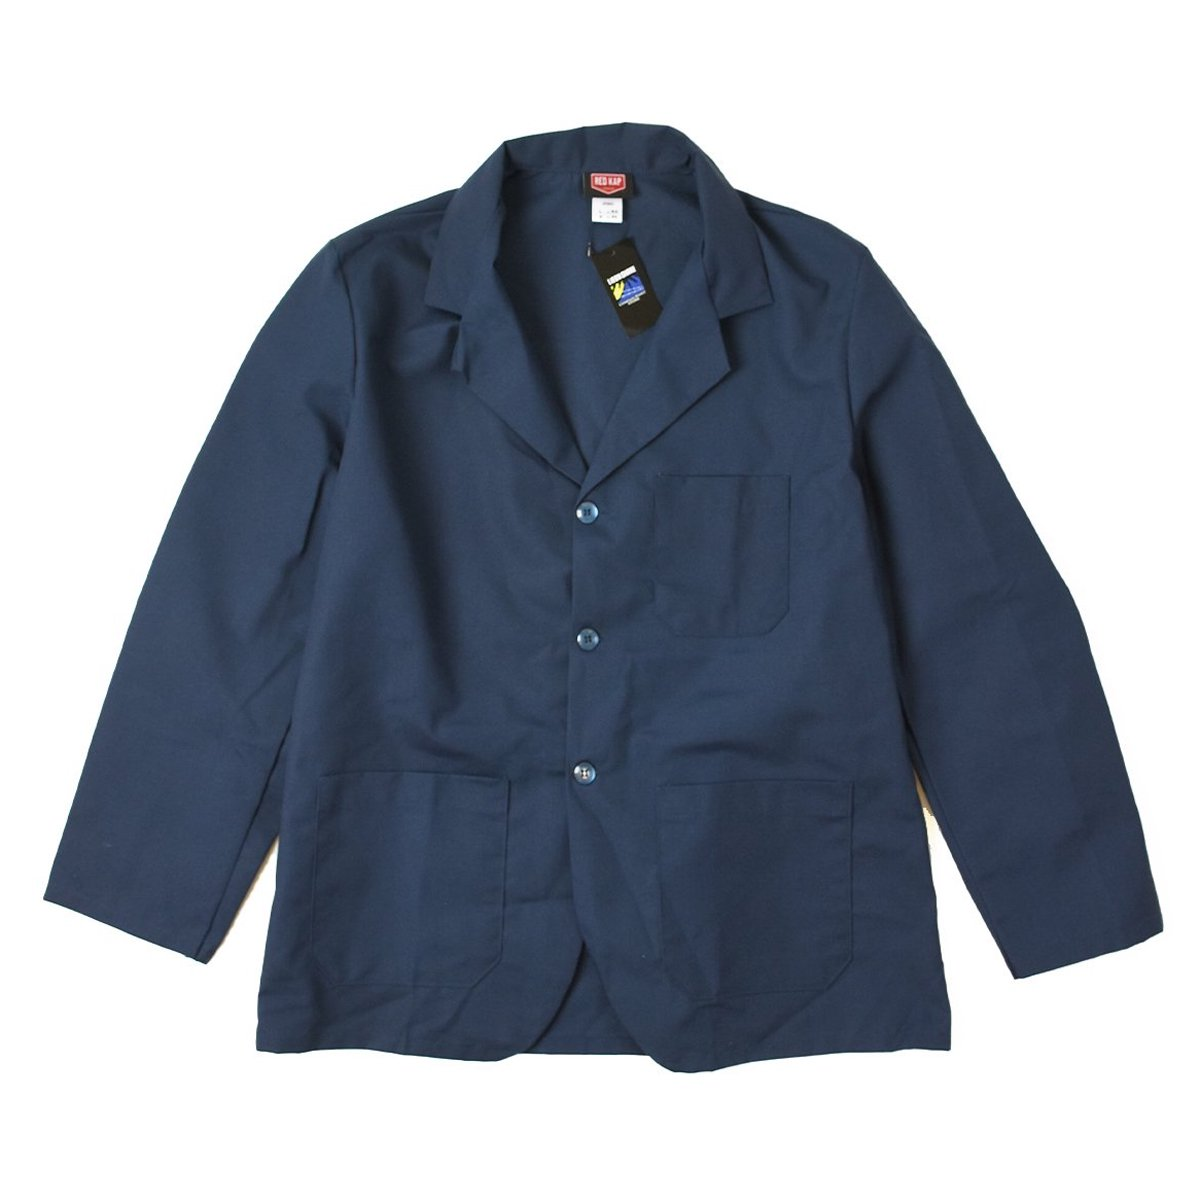 <img class='new_mark_img1' src='https://img.shop-pro.jp/img/new/icons8.gif' style='border:none;display:inline;margin:0px;padding:0px;width:auto;' />【RED KAP】Lapel Counter Coat (Navy)                           </a>             <span class=